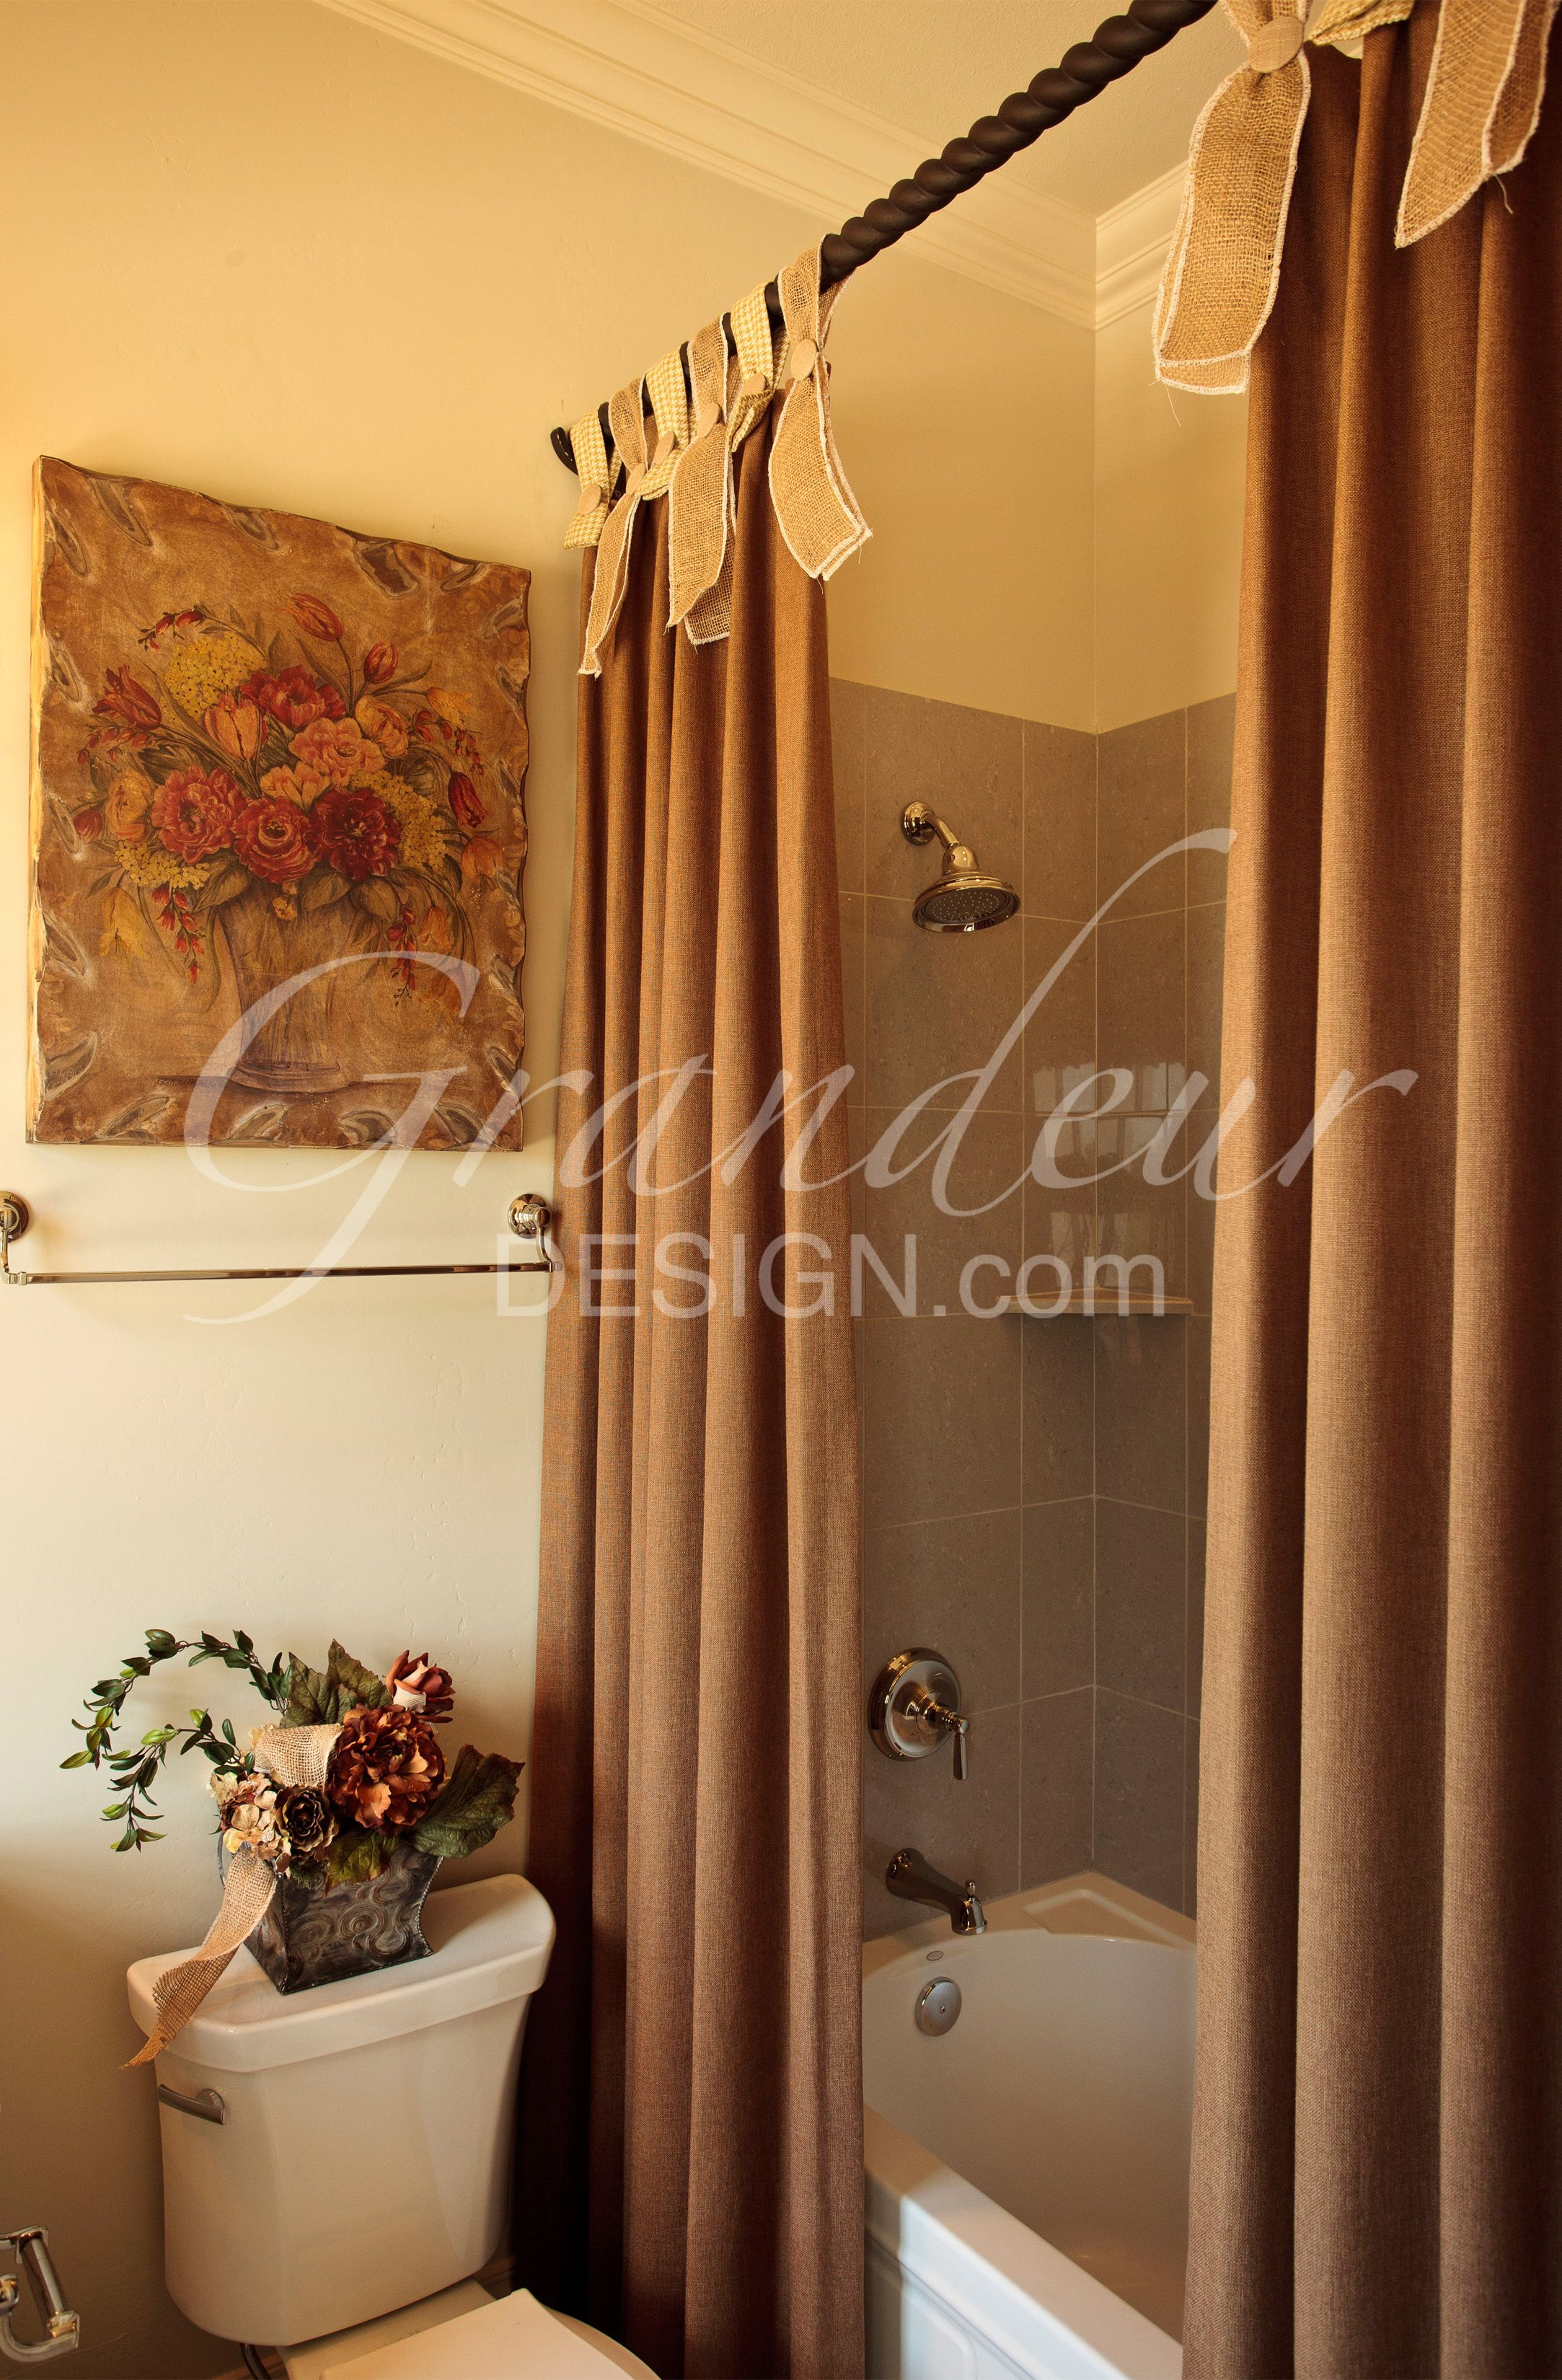 exterior shower curtain adds some nice softness to the bathroom ...